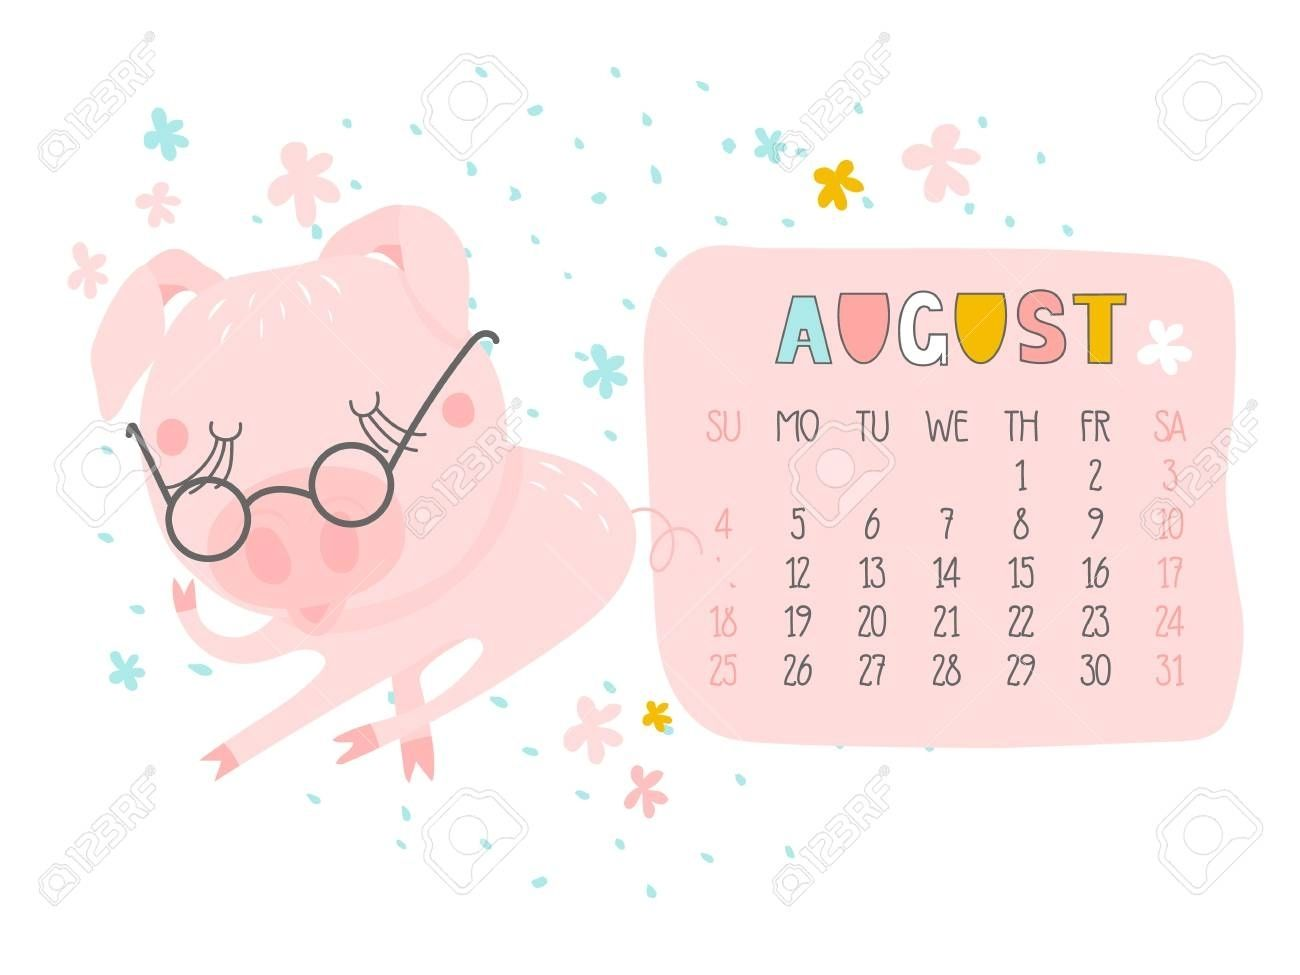 Creative Calendar For August 2019 With Cute Pig. Concept